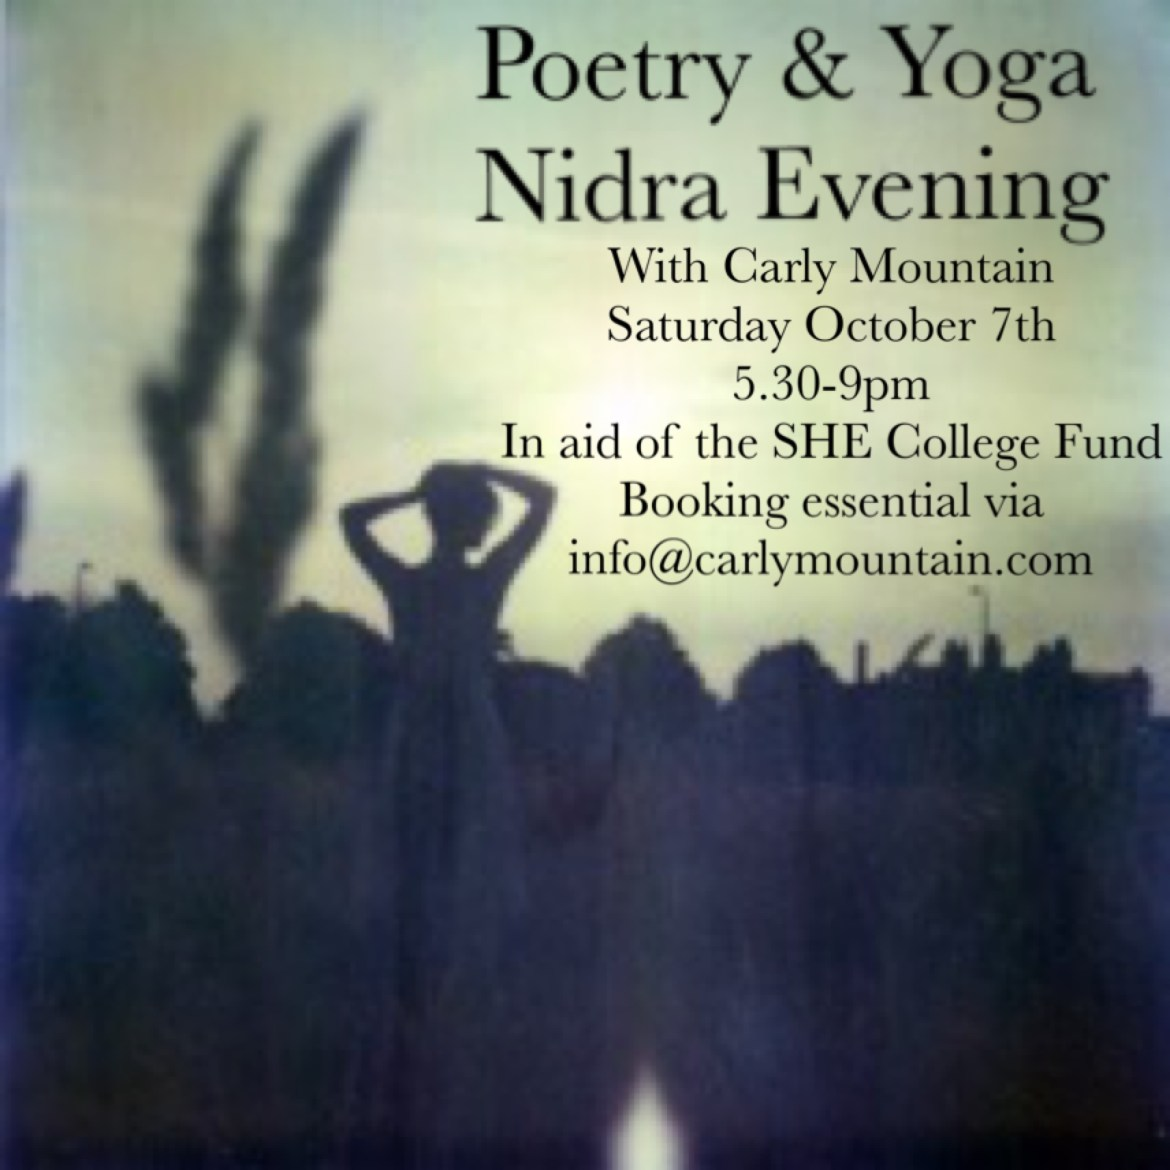 Embracing Autumn – Poetry & Yoga Nidra Evening Saturday October 7th 2017